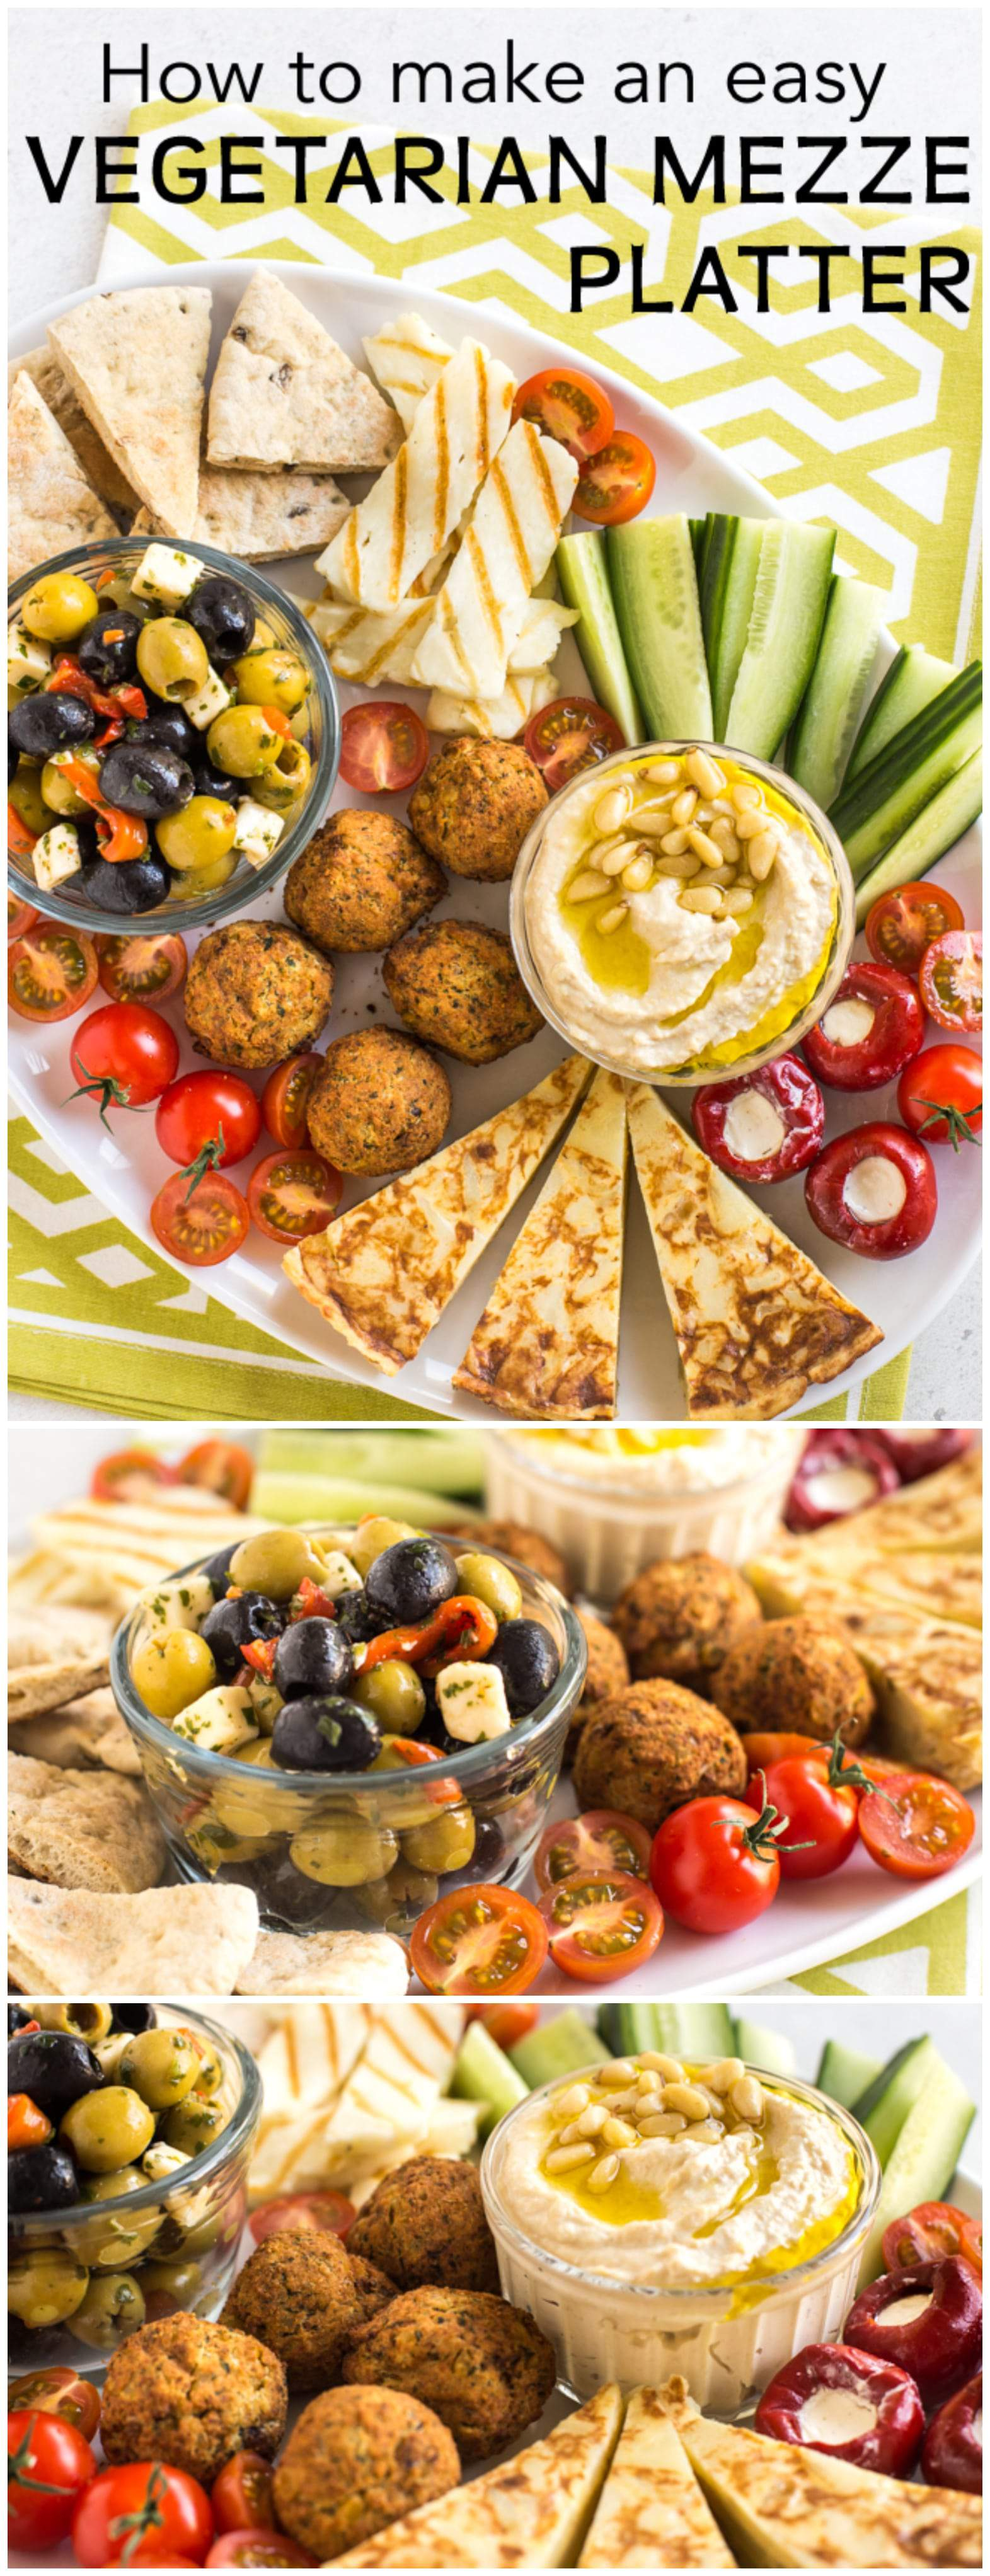 How to make an easy vegetarian mezze platter - with hummus, falafel, pitta bread, olives, and lots more! Such a great social dinner - serve it up with cocktails or sangria and let your friends dig in! #vegetarianmezze #mezzeplatter #falafel #hummus #dinnerparty #vegetariandinnerparty